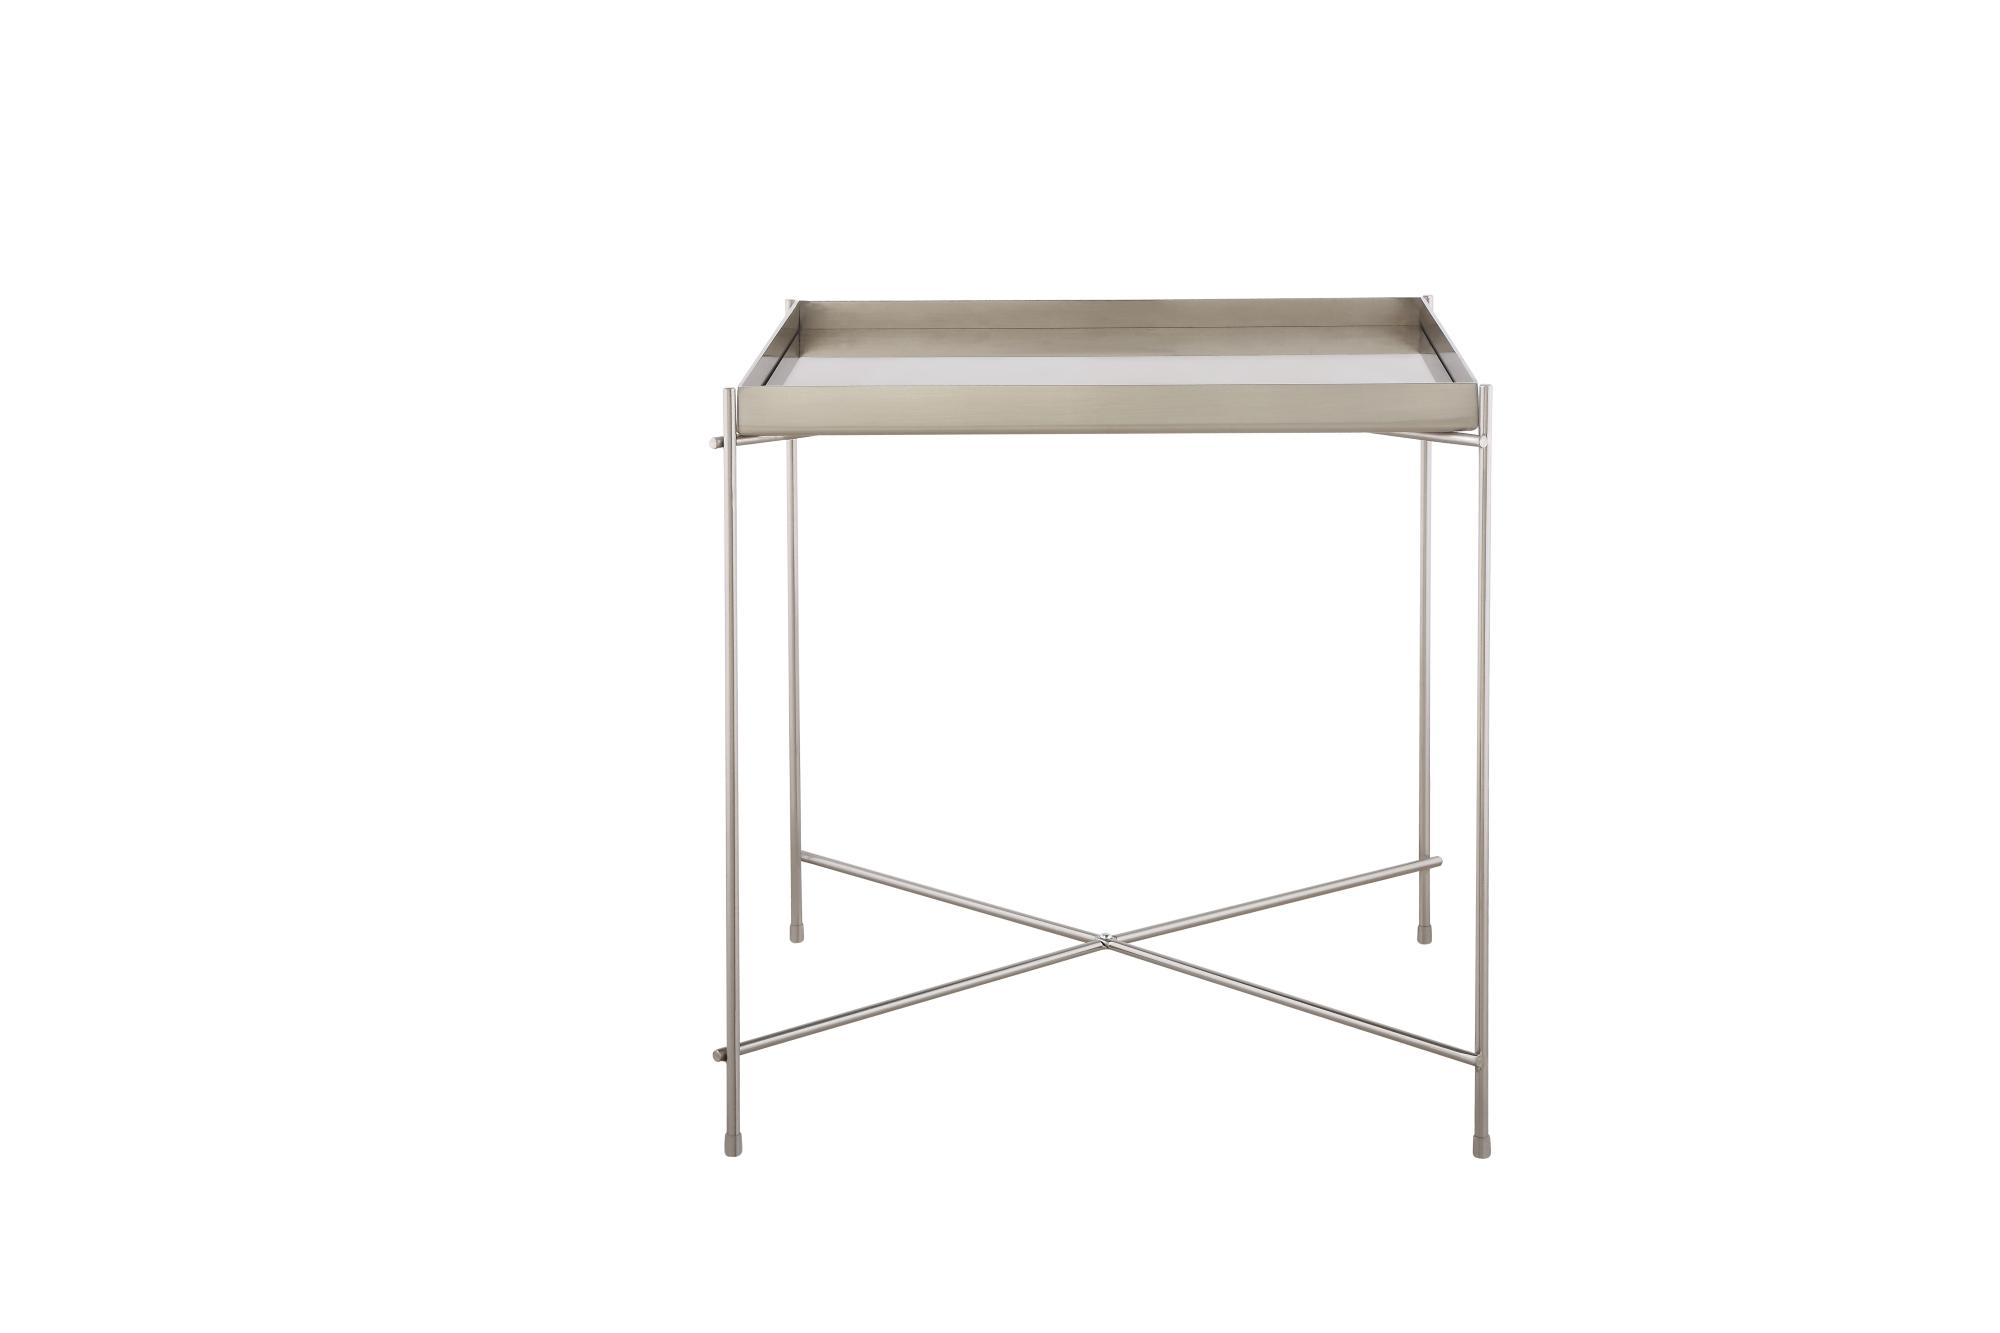 Oakland Brush Nickel Metal Mirror Side Table - Square